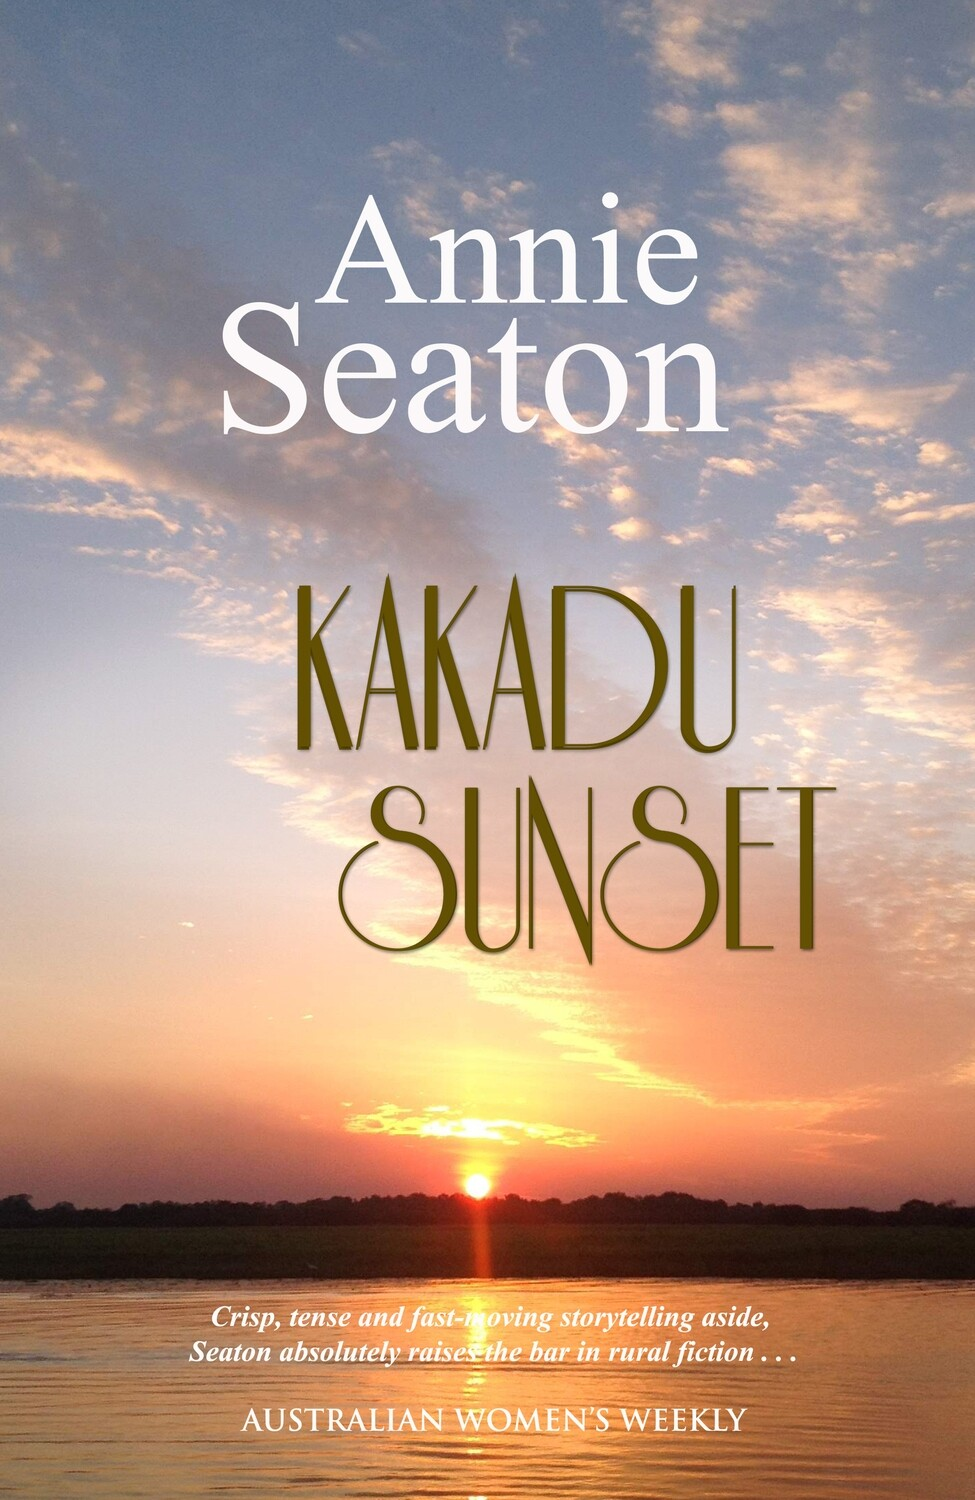 Kakadu Sunset - Signed print copy (including postage)